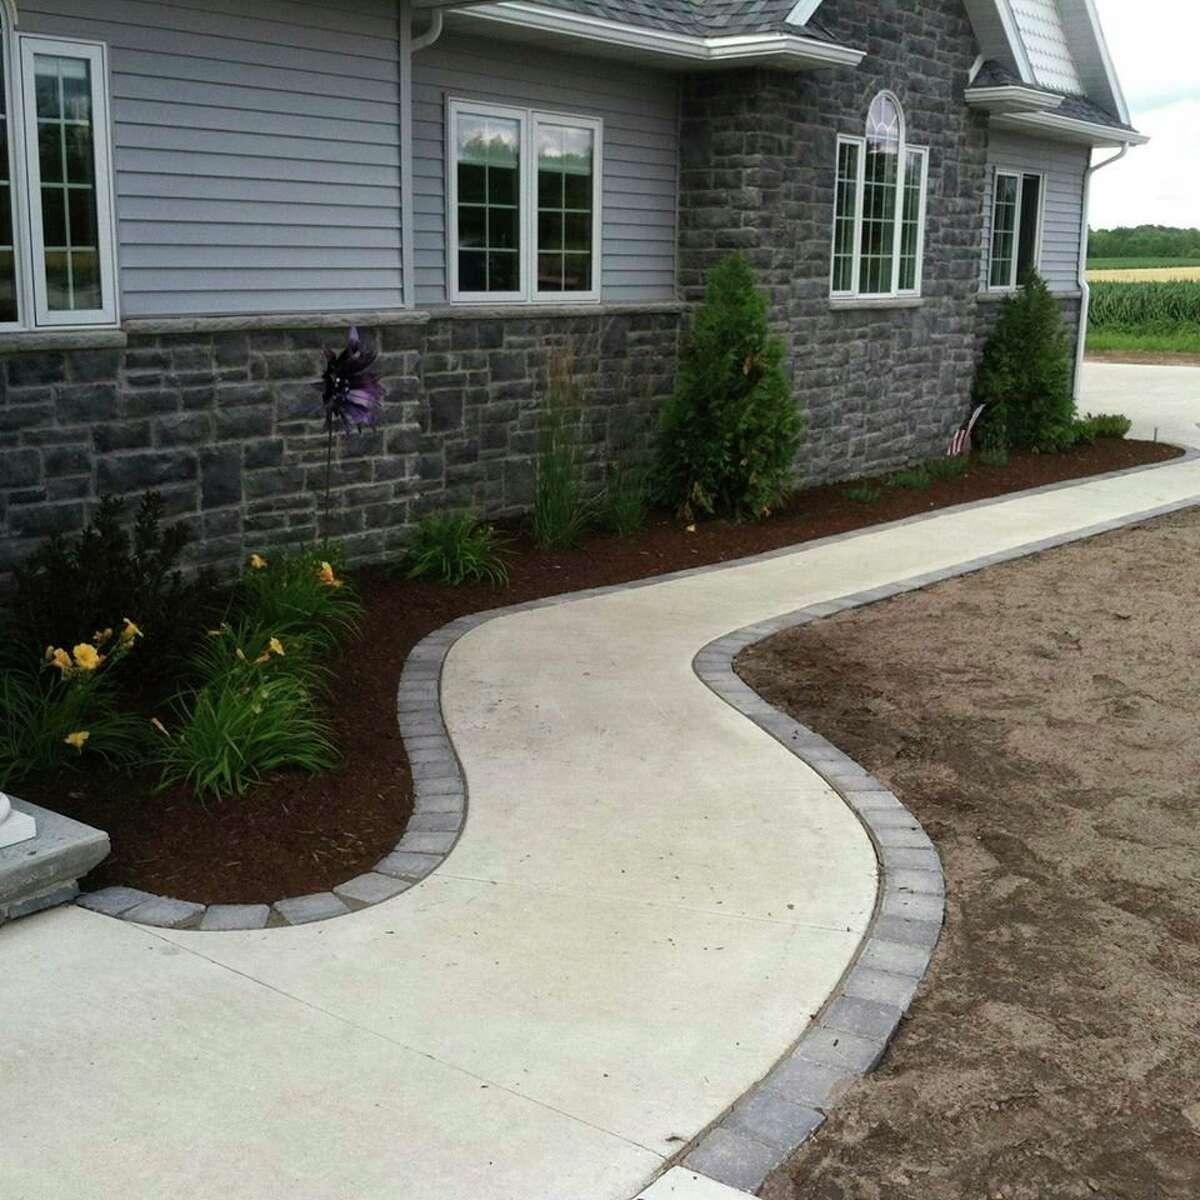 Green Acres Landscaping is open for business and ready to help its customers with all their lawn care needs. (Green Acres Landscaping/Courtesy Photo)